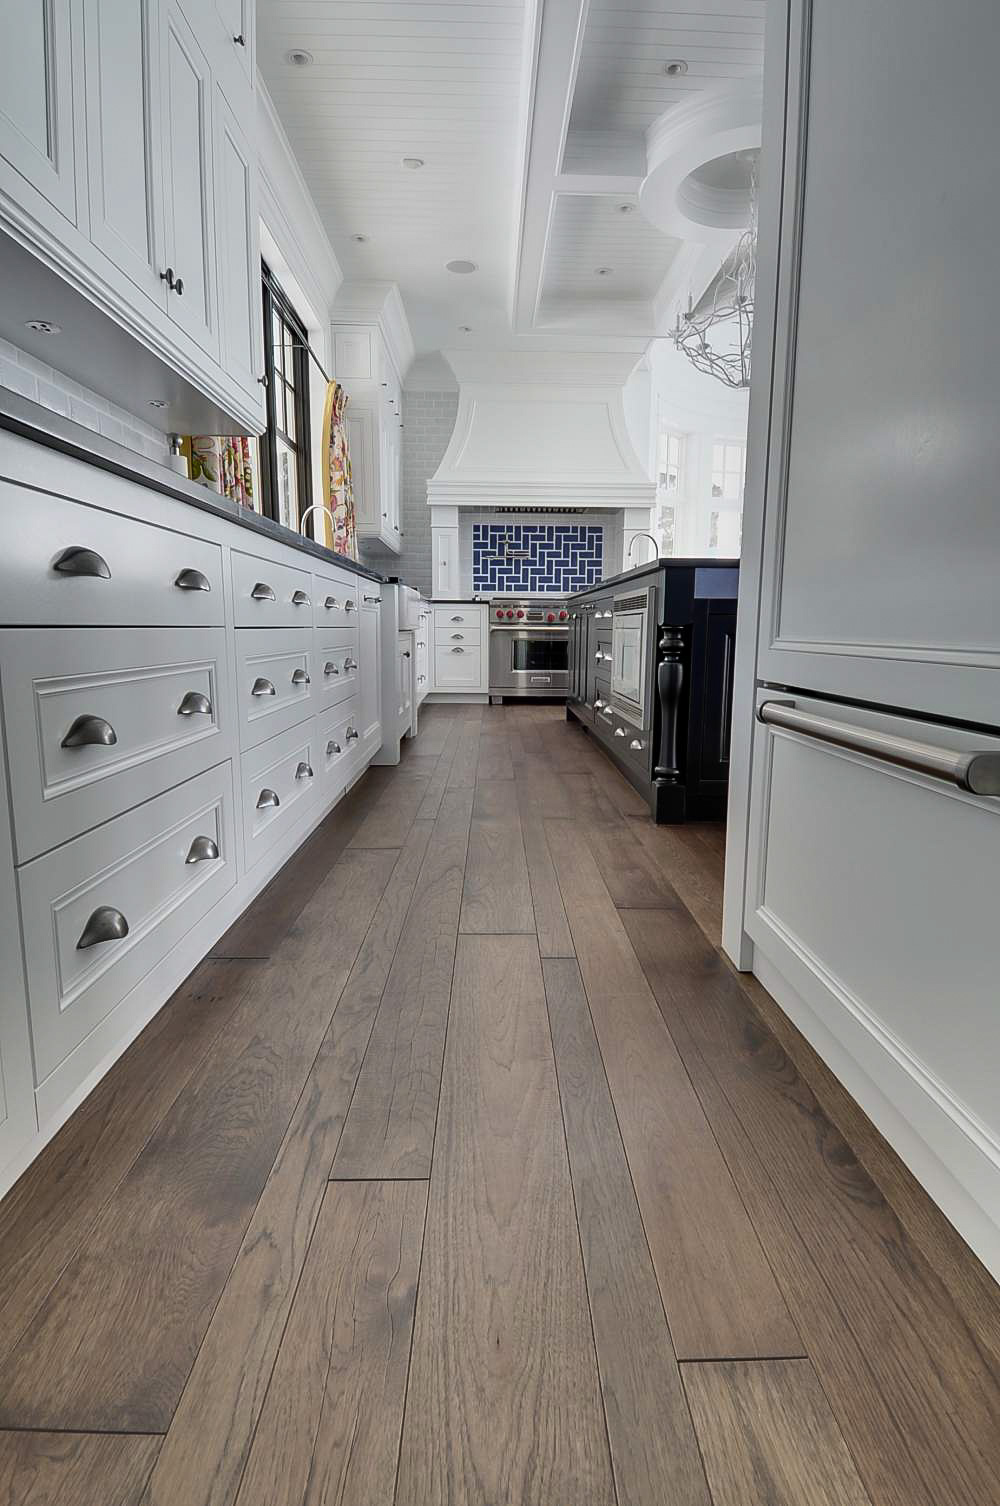 hickory kitchen hardwood floor-3.jpg